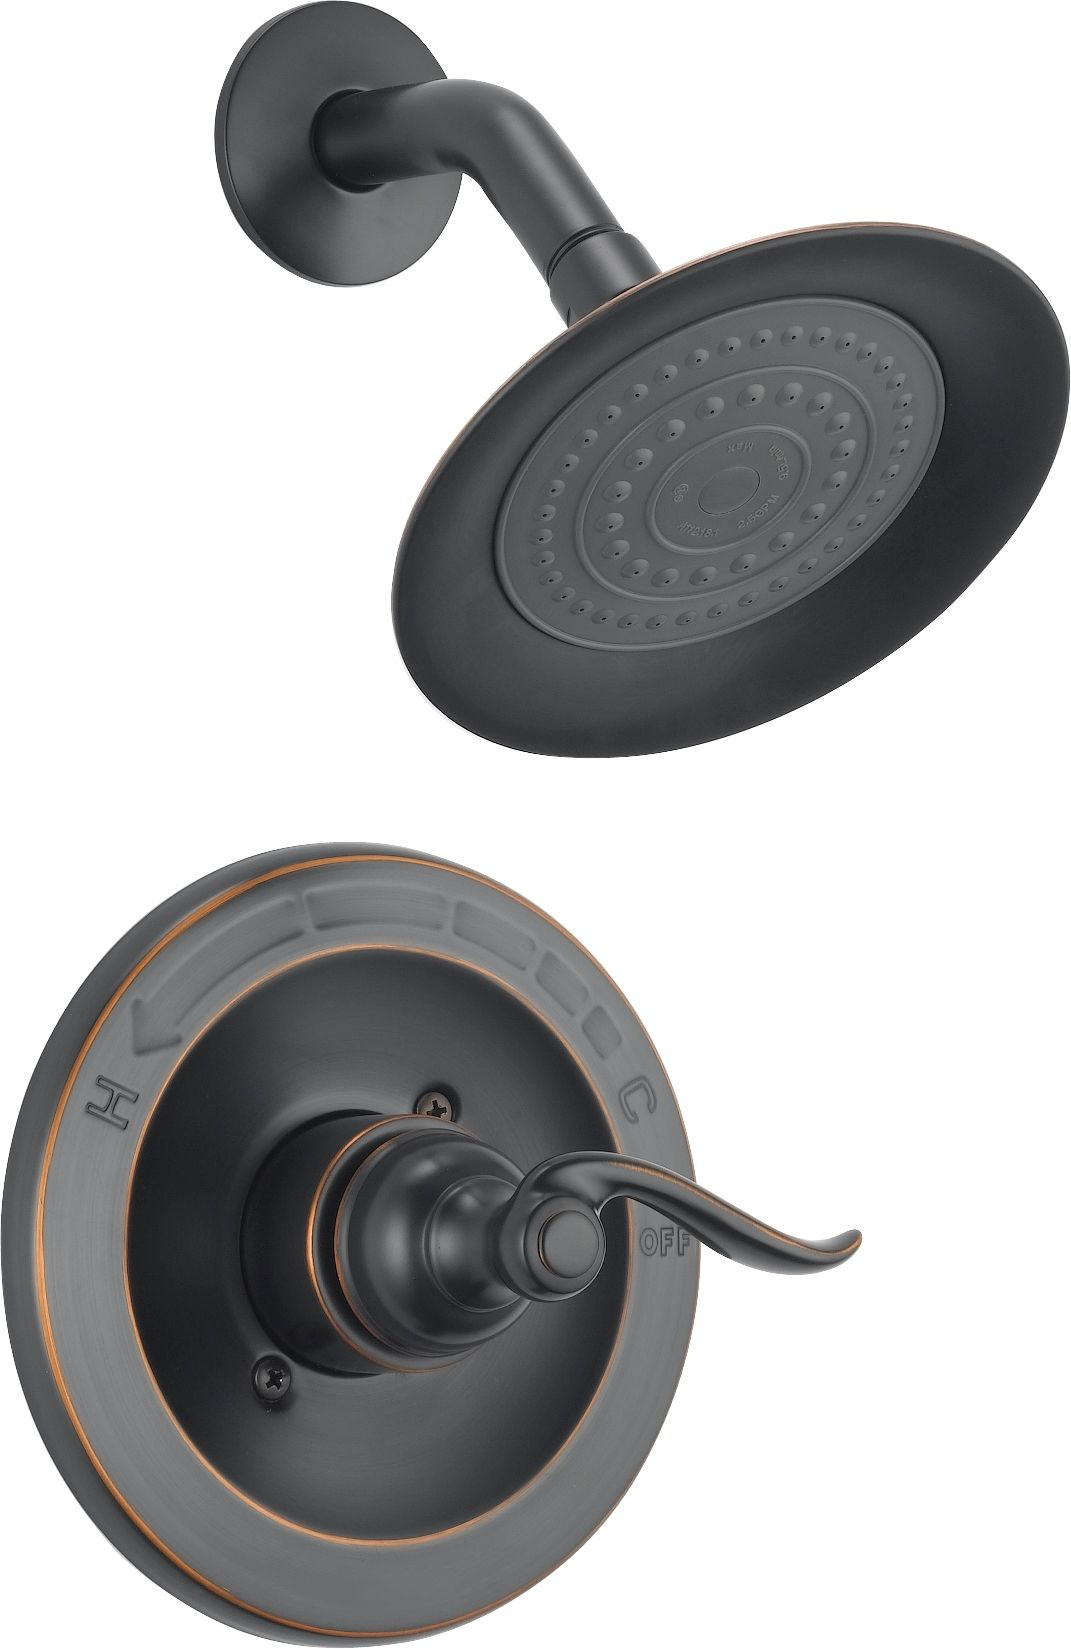 Delta BT14296 OB Oil Rubbed Bronze Windemere Monitor 14 Series Single  Function Pressure Balanced Shower Trim Package   Less Rough In Valve    Faucet.com